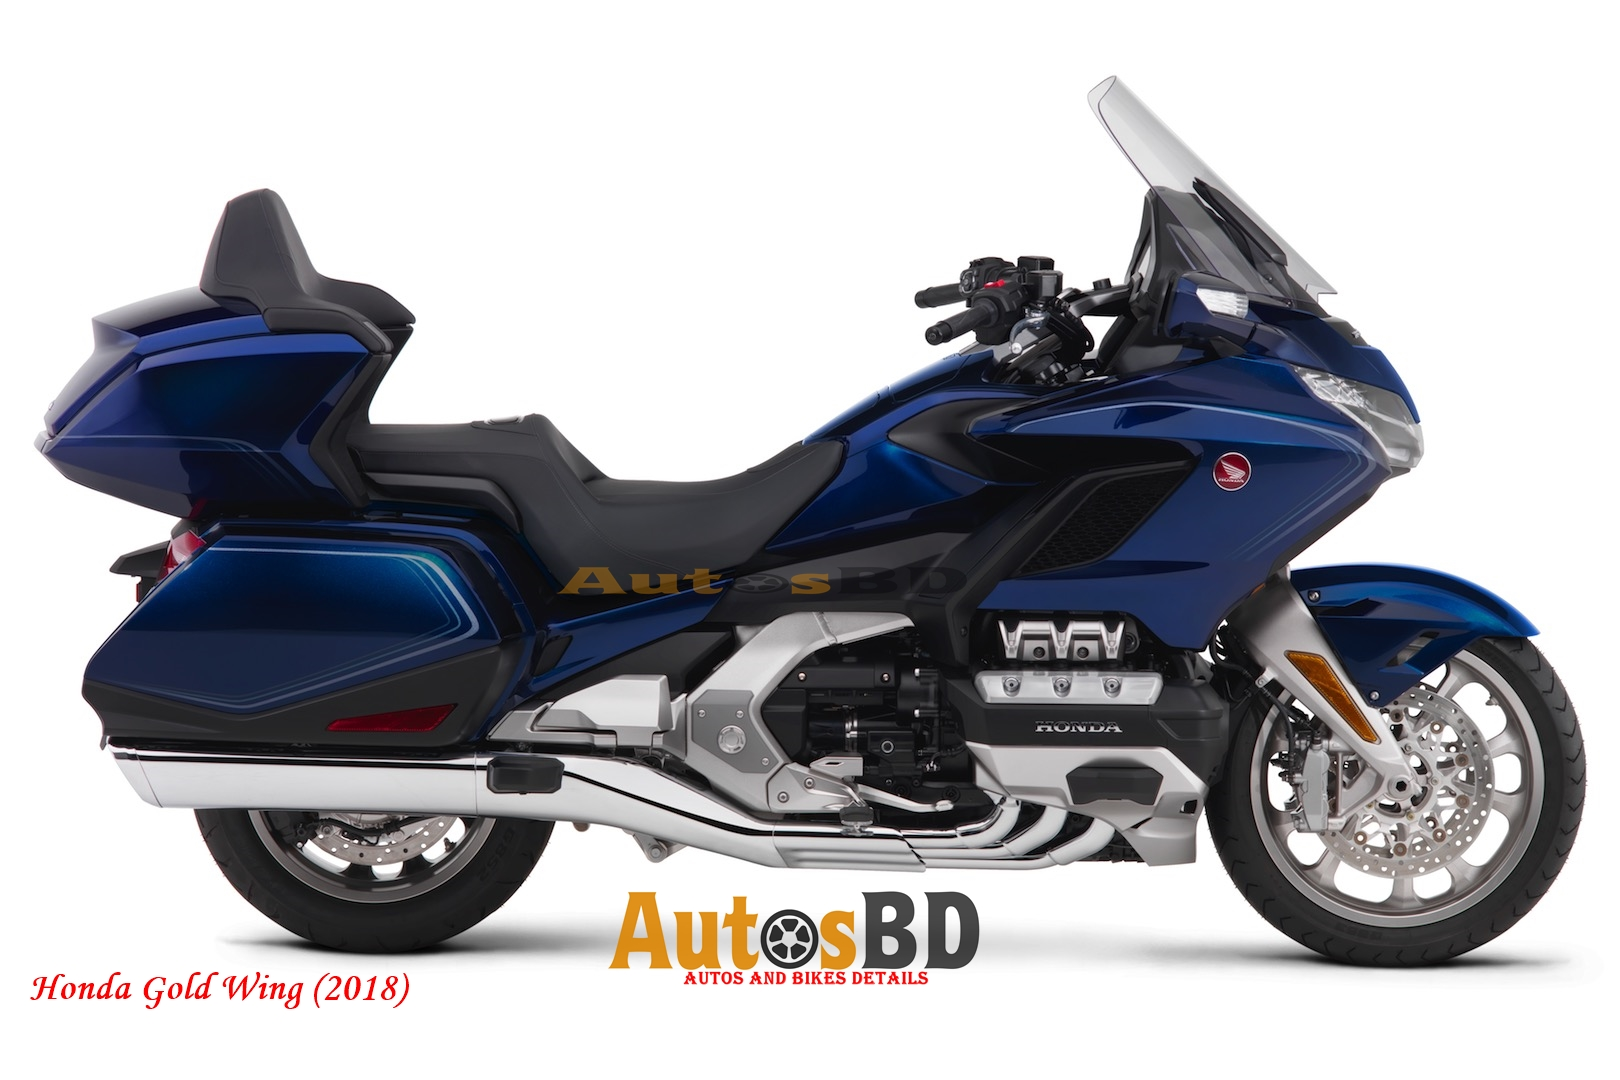 Honda Gold Wing (2018) Motorcycle Specification